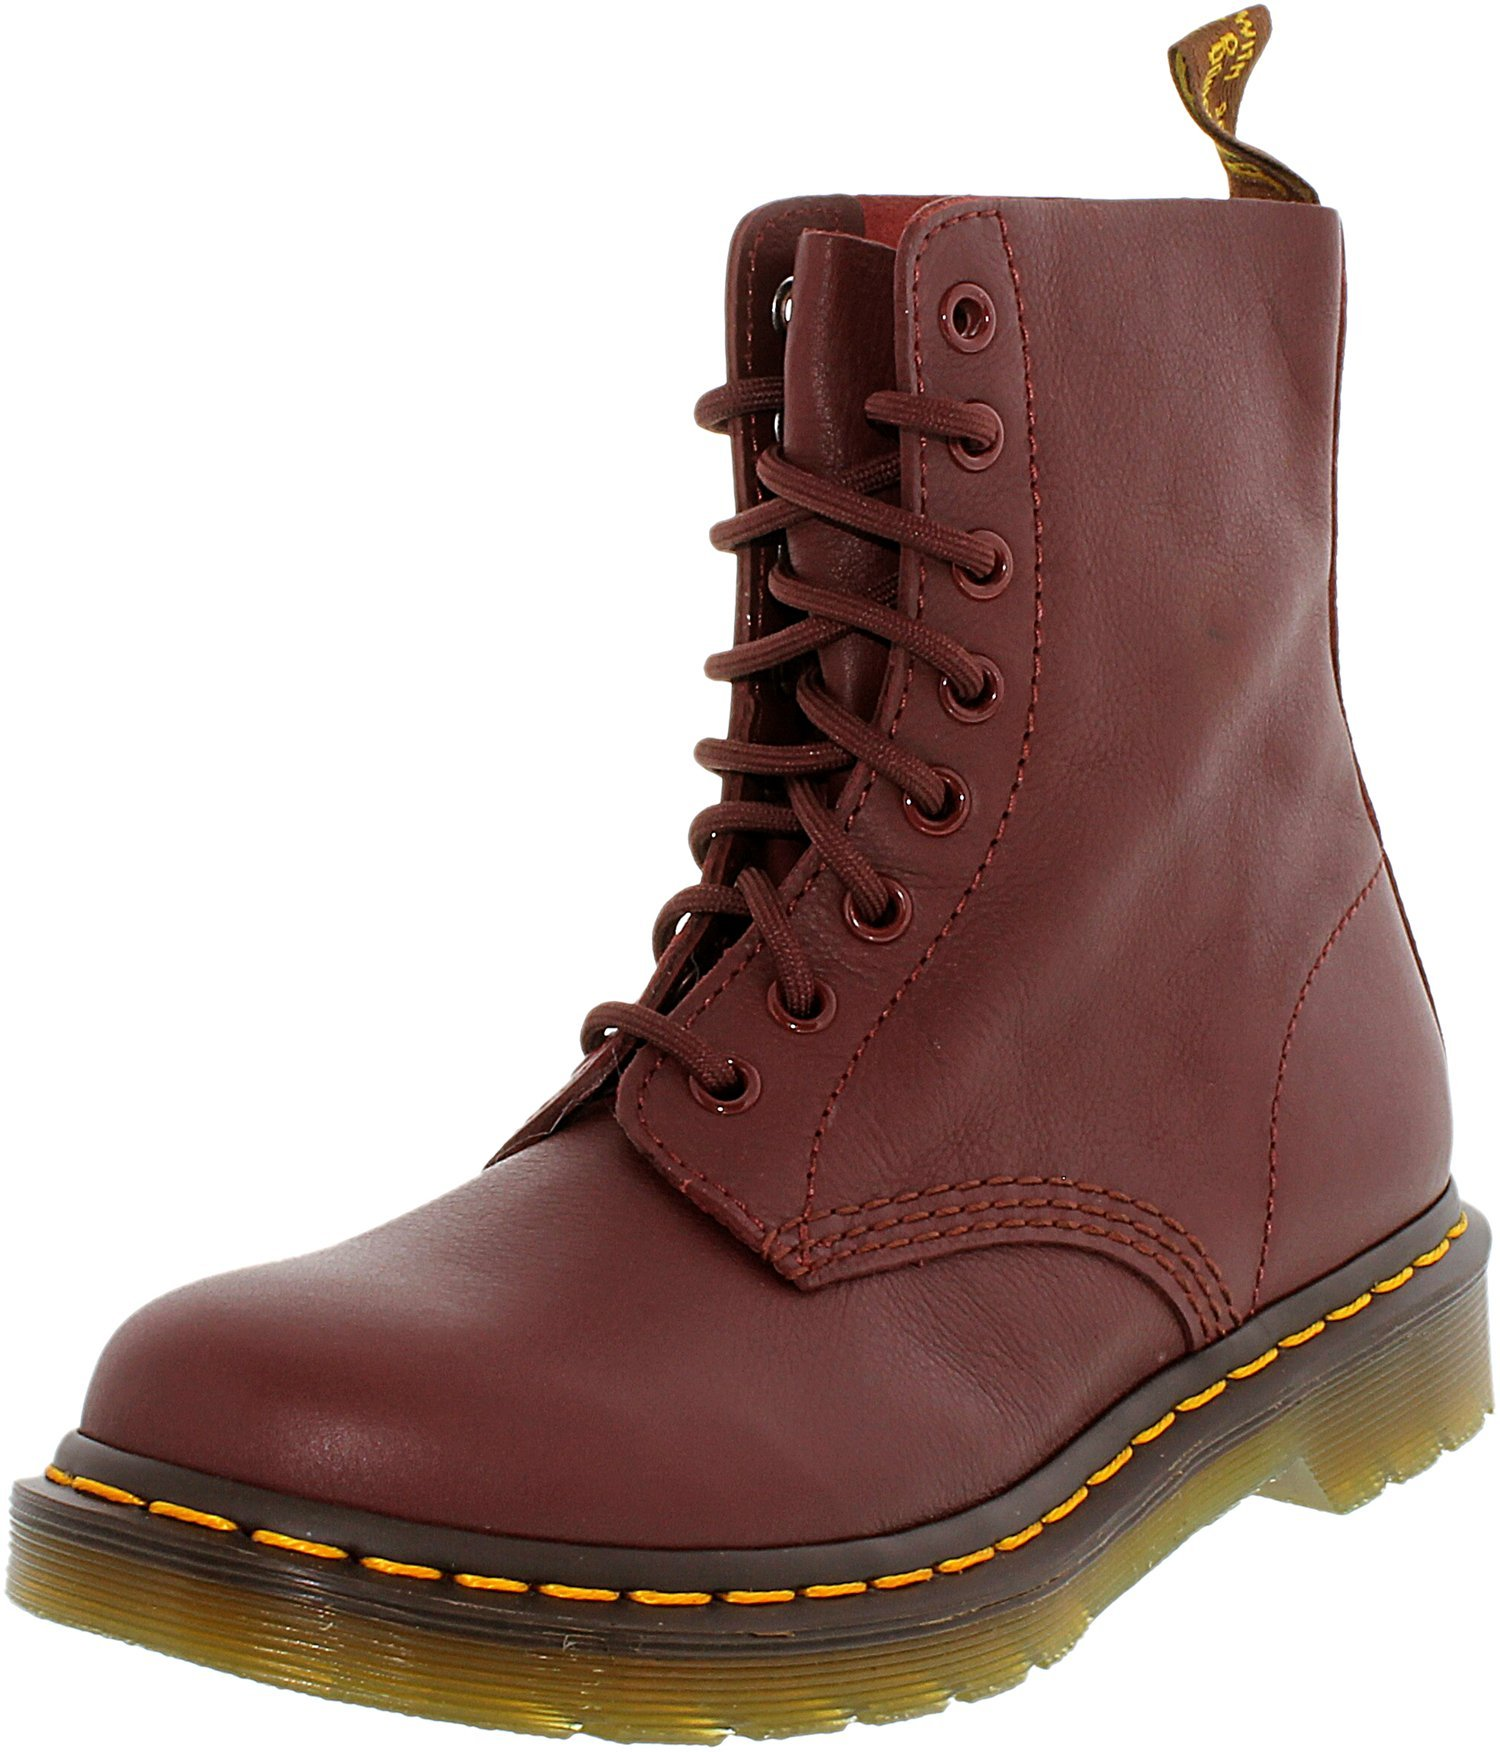 Dr. Martens Women's Pascal Combat Boot, Cherry Red, 7 UK/9 M US